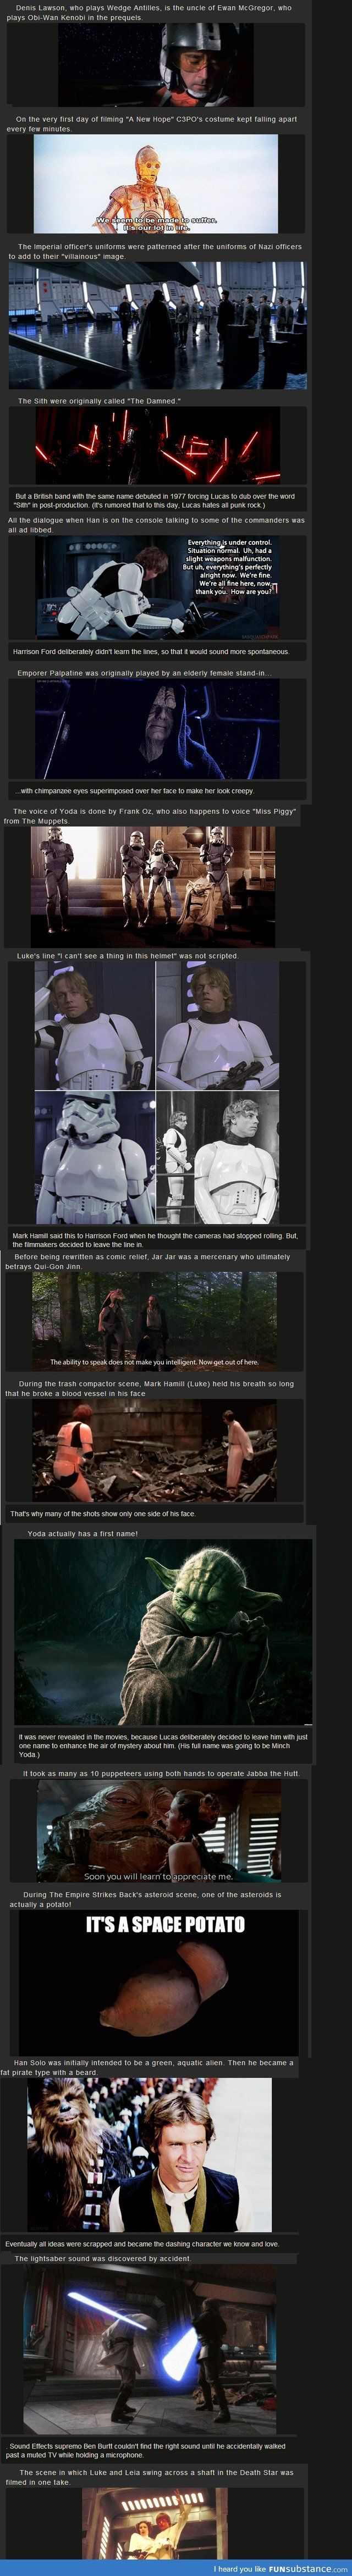 I feel like Jar Jar's character would have been quite interesting if it had been written this way. That, or more people would hate him.